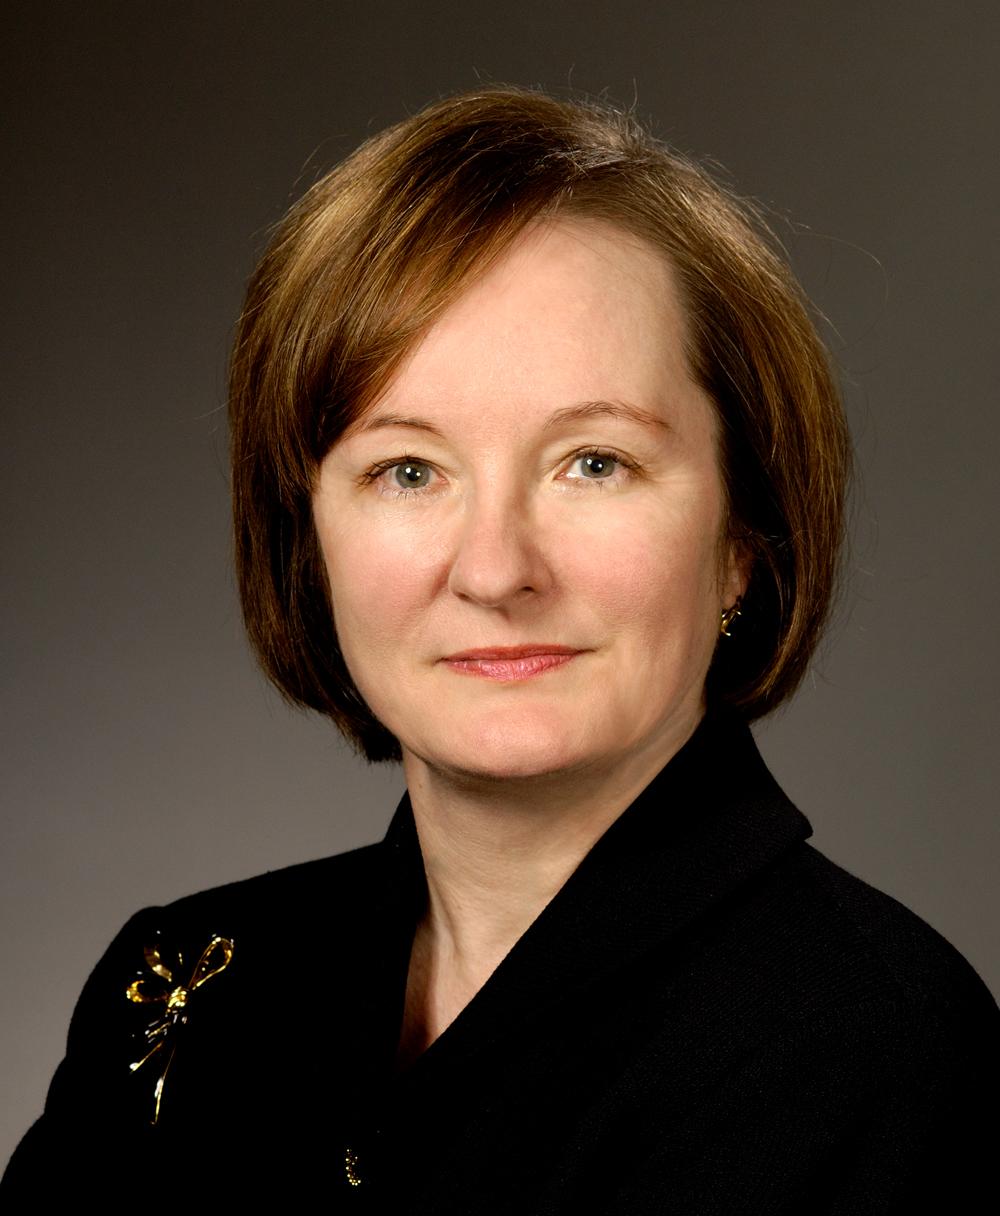 Eleanor Bloxham is CEO of The Value Alliance and Corporate Governance Alliance